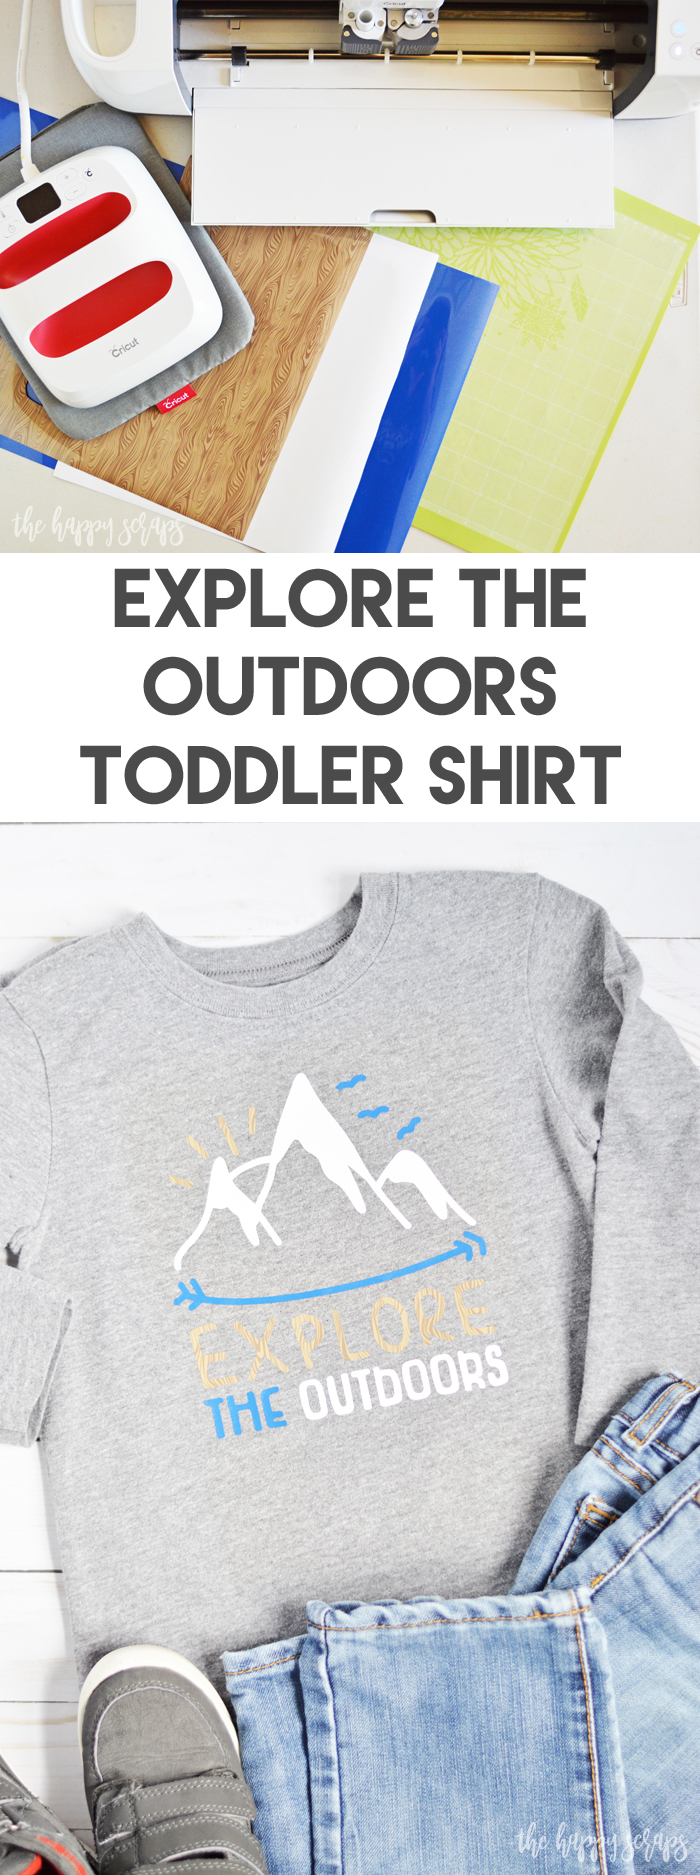 Isn't exploring what summer is all about? This Explore the Outdoors Toddler Shirt will be a favorite. Get the details for it on the blog.